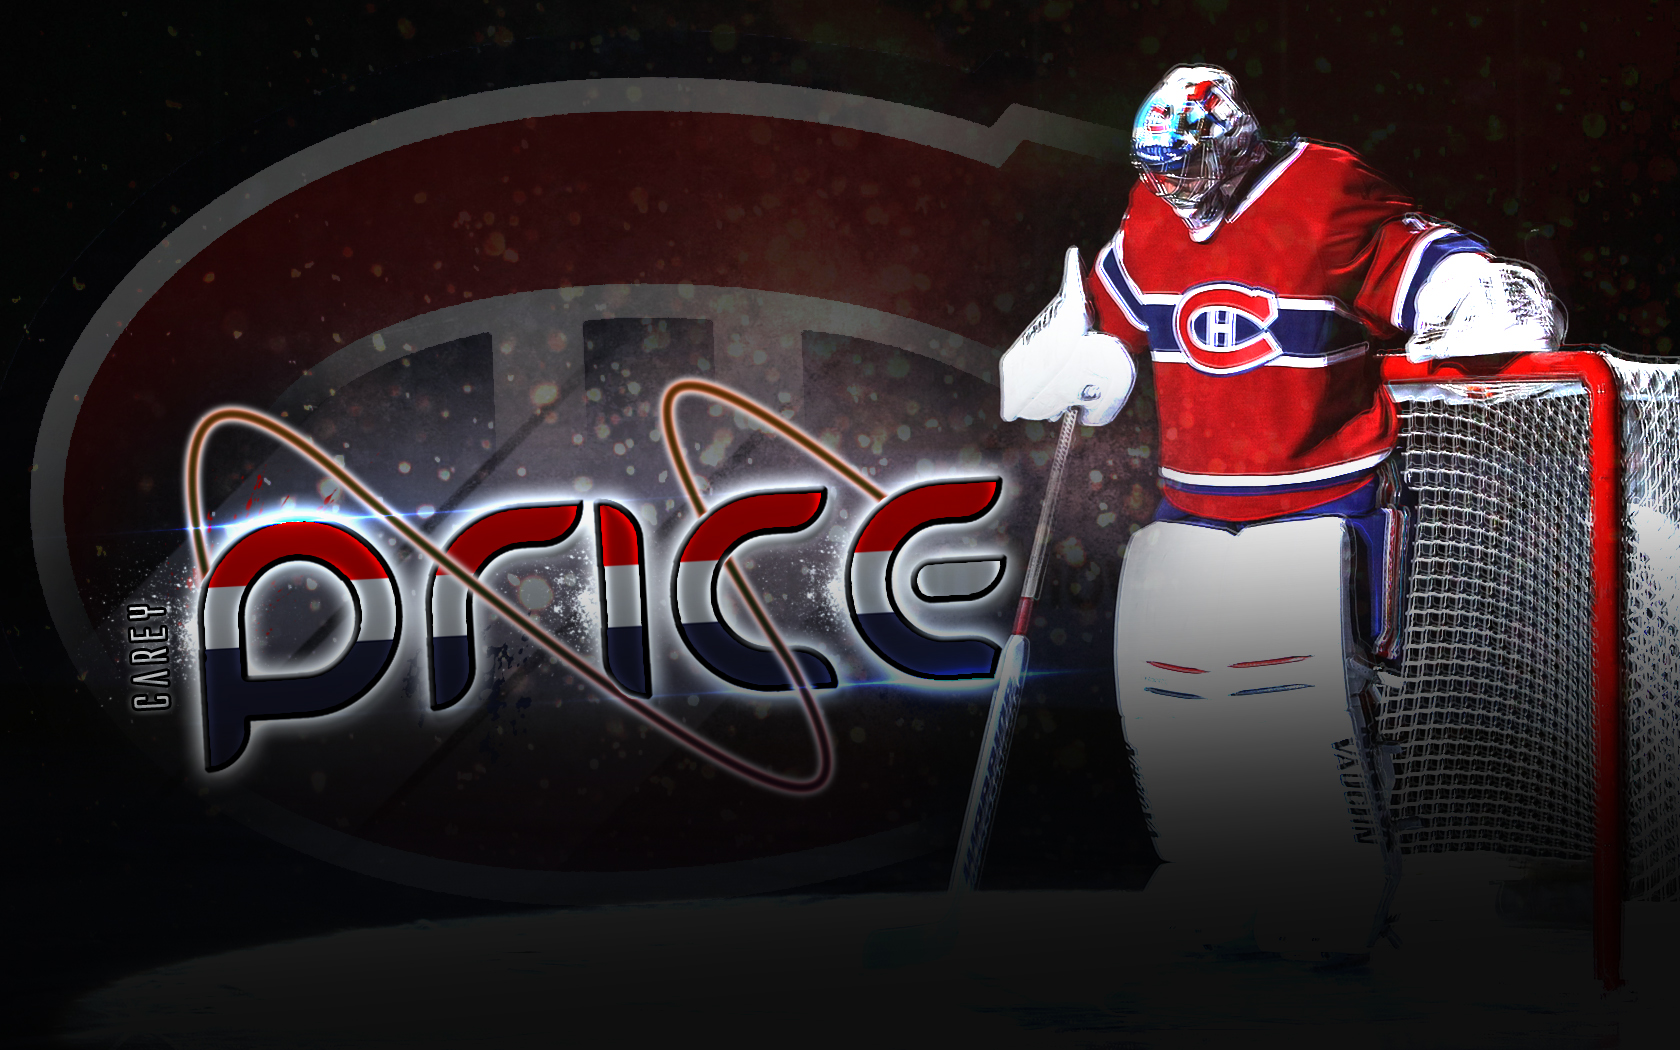 Beautiful Wallpaper Logo Montreal Canadiens - Montreal-Canadiens-Carey-Price-montreal-canadiens-40373065-1680-1050  HD_103673.jpg